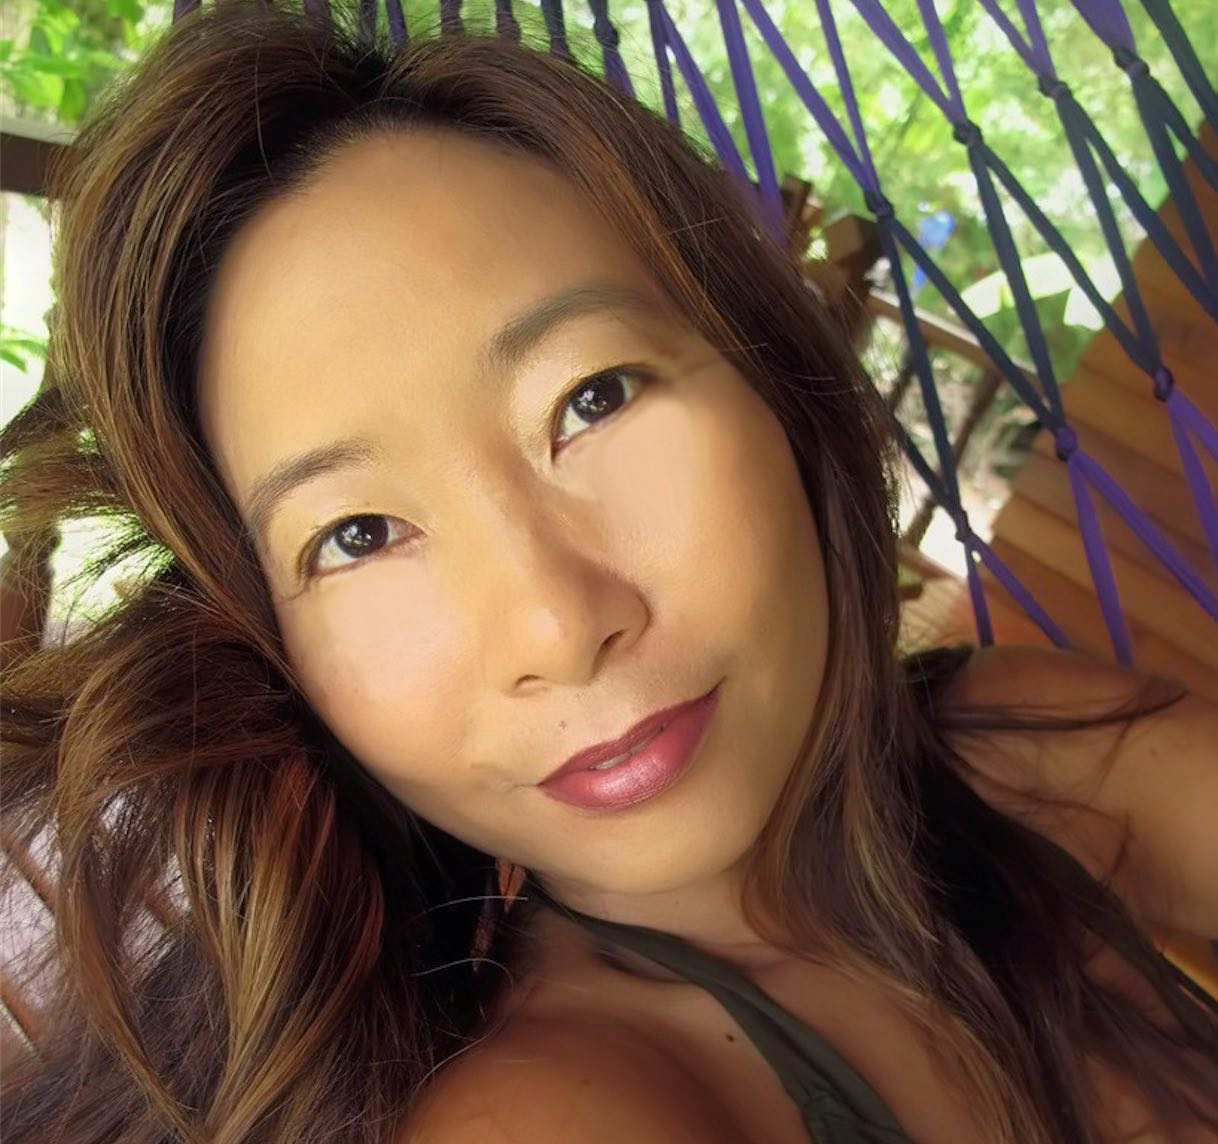 Lorna Li  is a new media strategist to sustainable brands, social ventures and visionary entrepreneurs, helping them attract their tribe and ignite a movement around their mission-driven businesses.  Through podcasting, video blogging and social media, she shares the stories of both indigenous people and the world's foremost experts in psychedelic science, modern shamanism, and consciousness research to inspire each and every one of us to explore the depths of our minds, spirits, planet…and evolve.   Lorna helps intuitives become visionaries and visionaries ignite a movement.